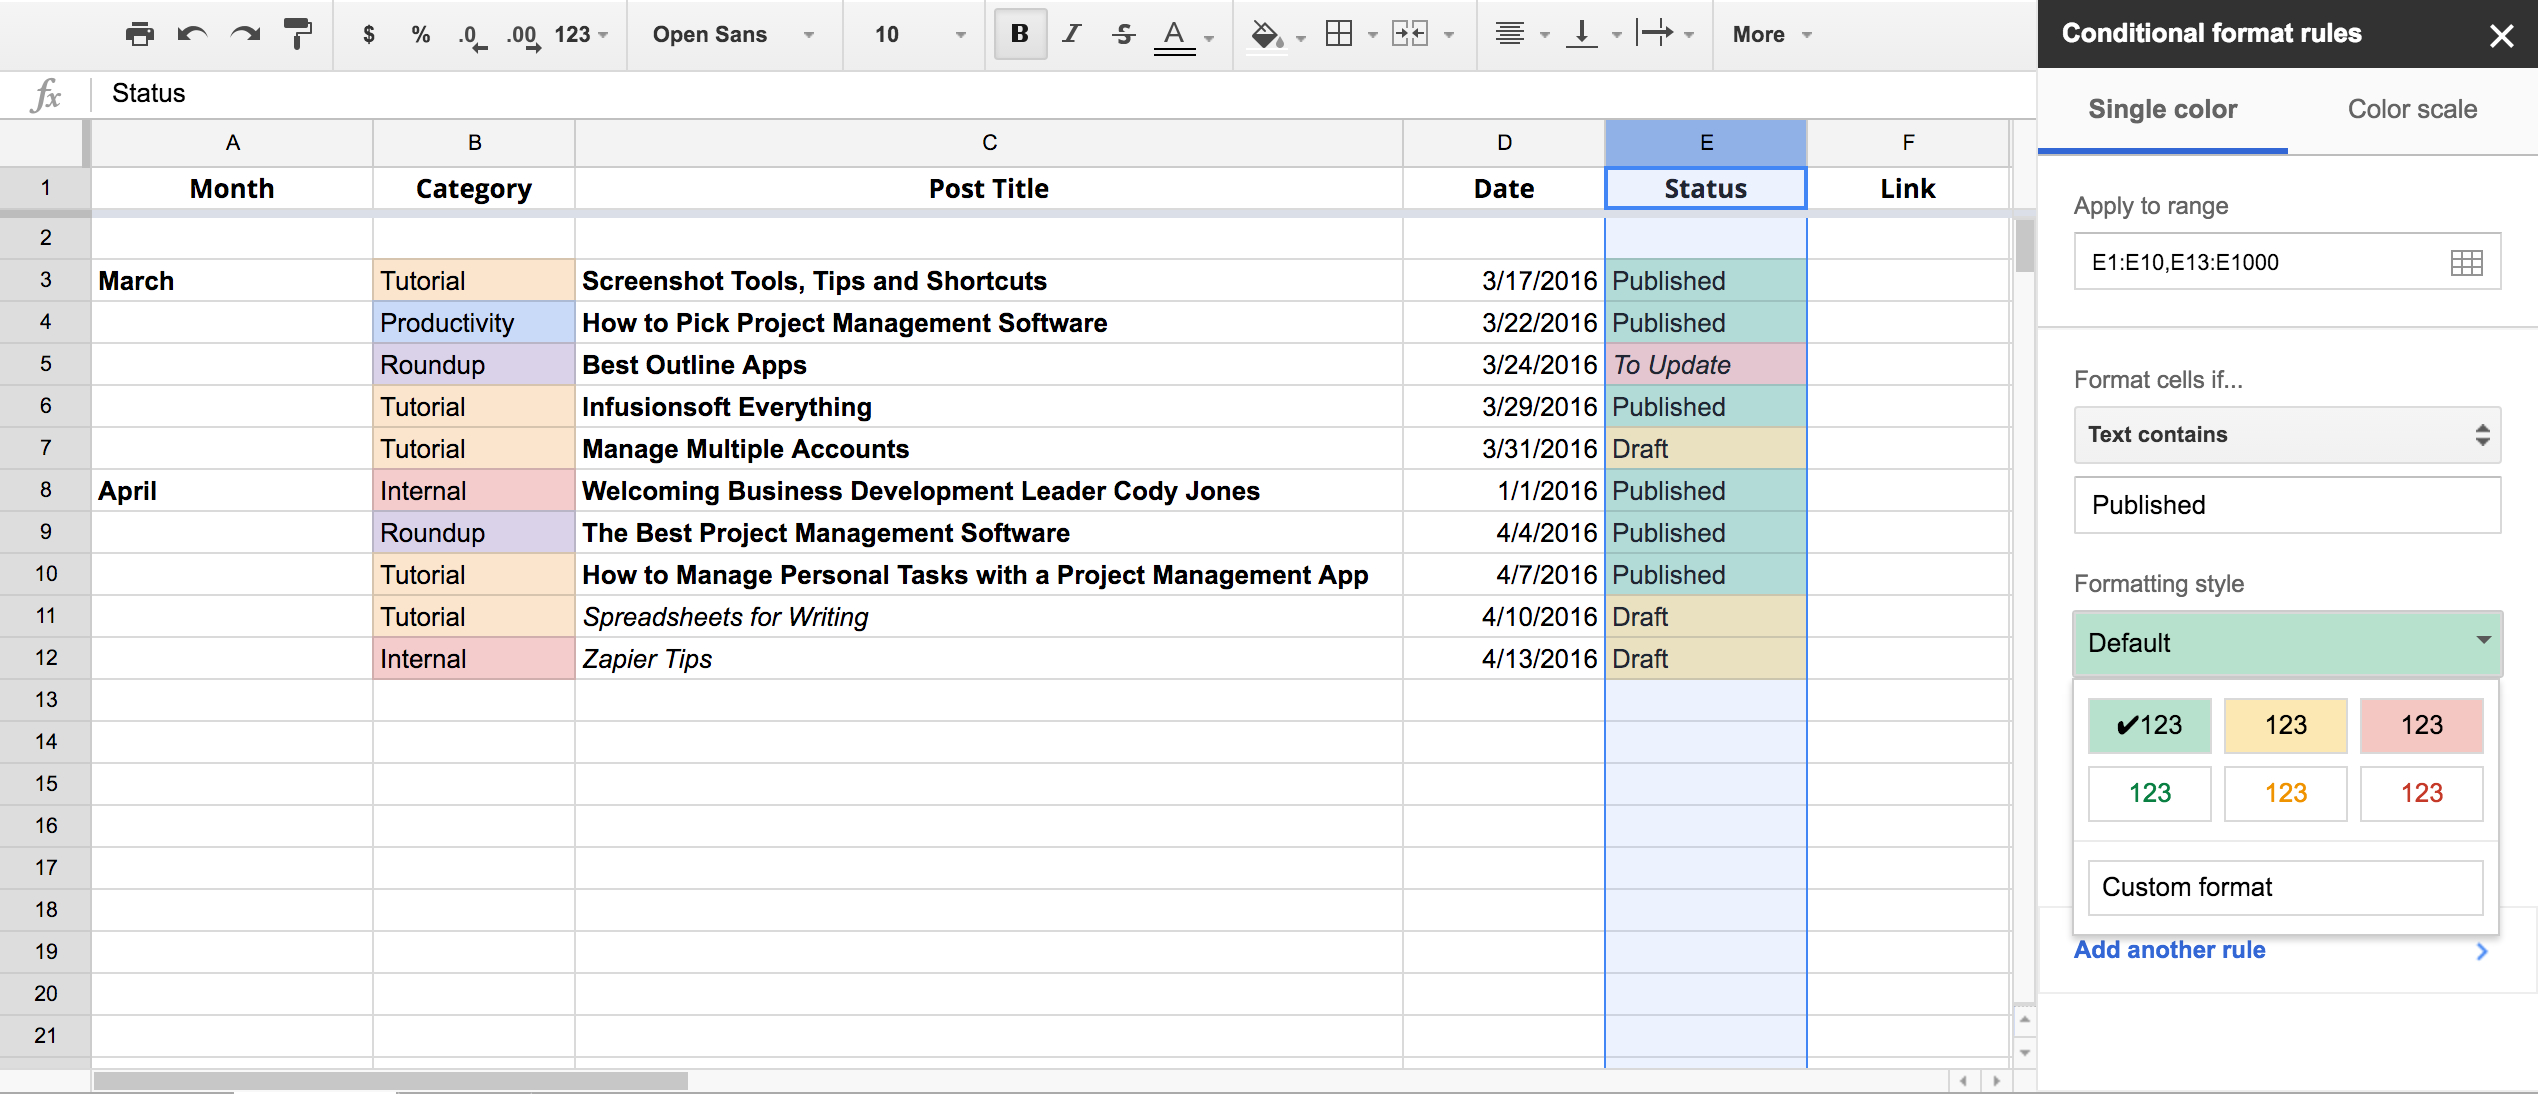 Spreadsheet Software Titles With Write Faster With Spreadsheets: 10 Shortcuts For Composing Outlines